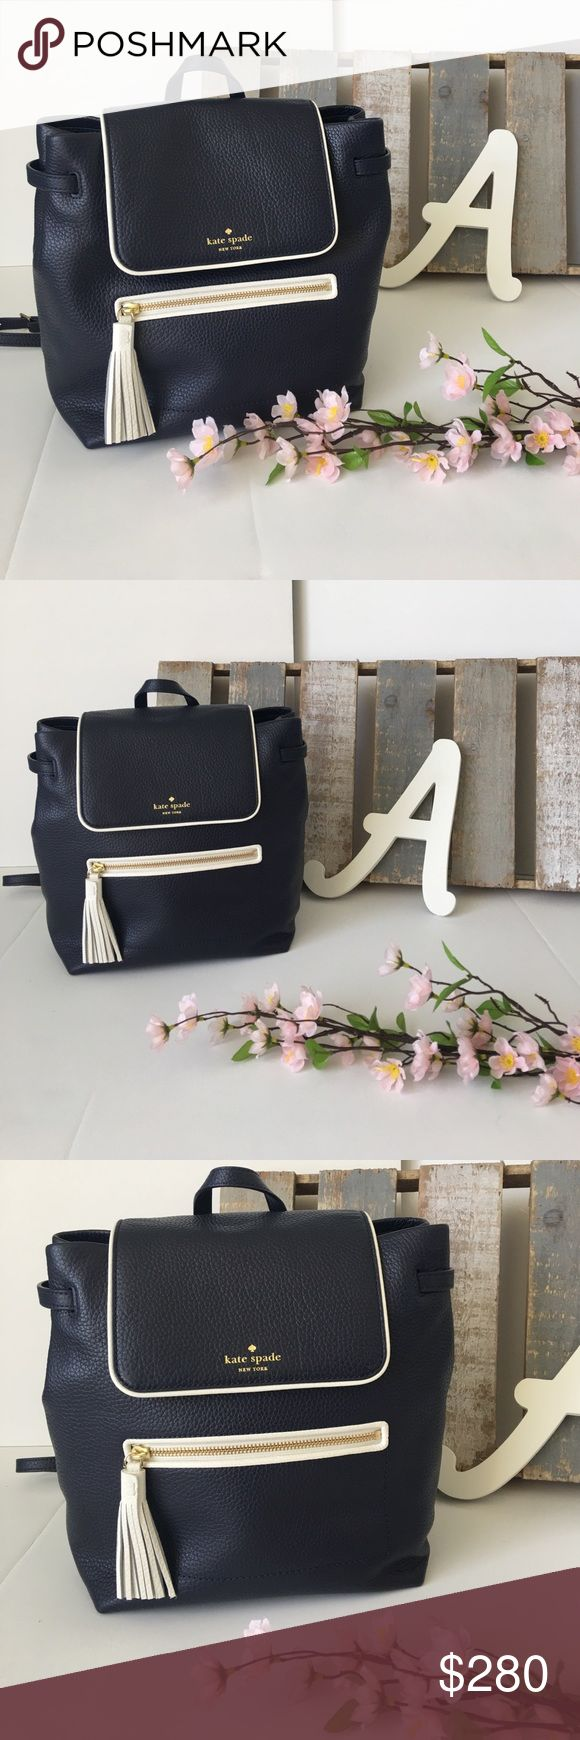 """Kate Spade """"Kacy"""" Backpack Navy Blue and White Kate Spade """"Kacy"""" backpack. Has front zipper pocket, inner zipper pocket, and two regular pockets. A bunch of room. So cute and originally $380!!! Brand new with tags and Kate Spade Care Guide. kate spade Bags Backpacks"""